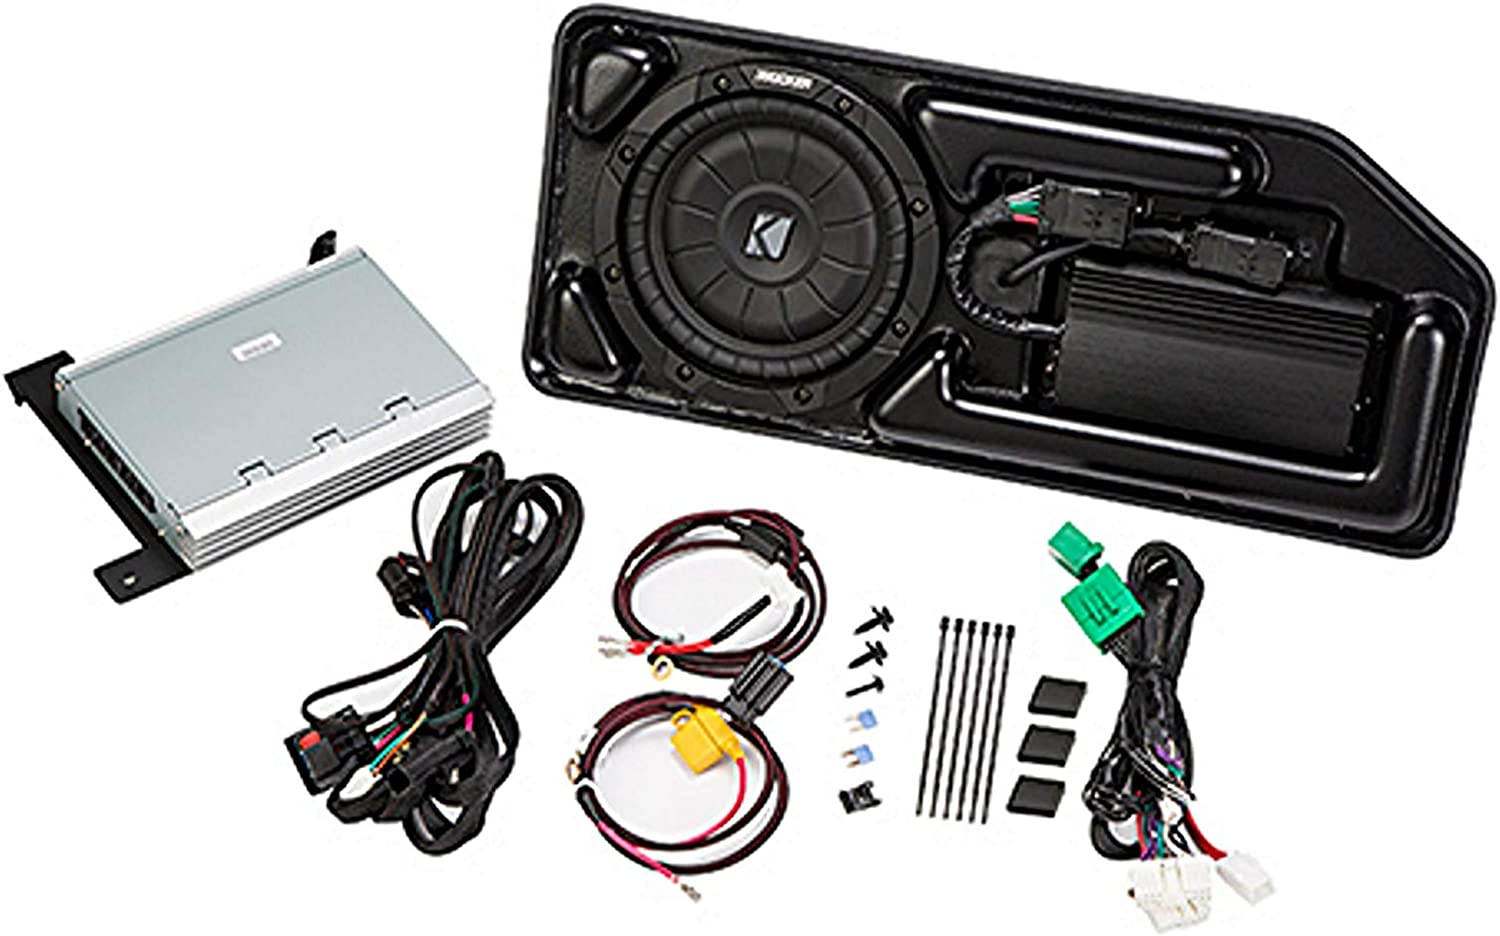 PCOCRE17I KICKER PowerStage Multi-Channel Amplifier /& Powered Subwoofer Upgrade Kit for 2017-2018 Chevrolet Colorado /& GMC Canyon Crew CAB Not Compatible w Bose